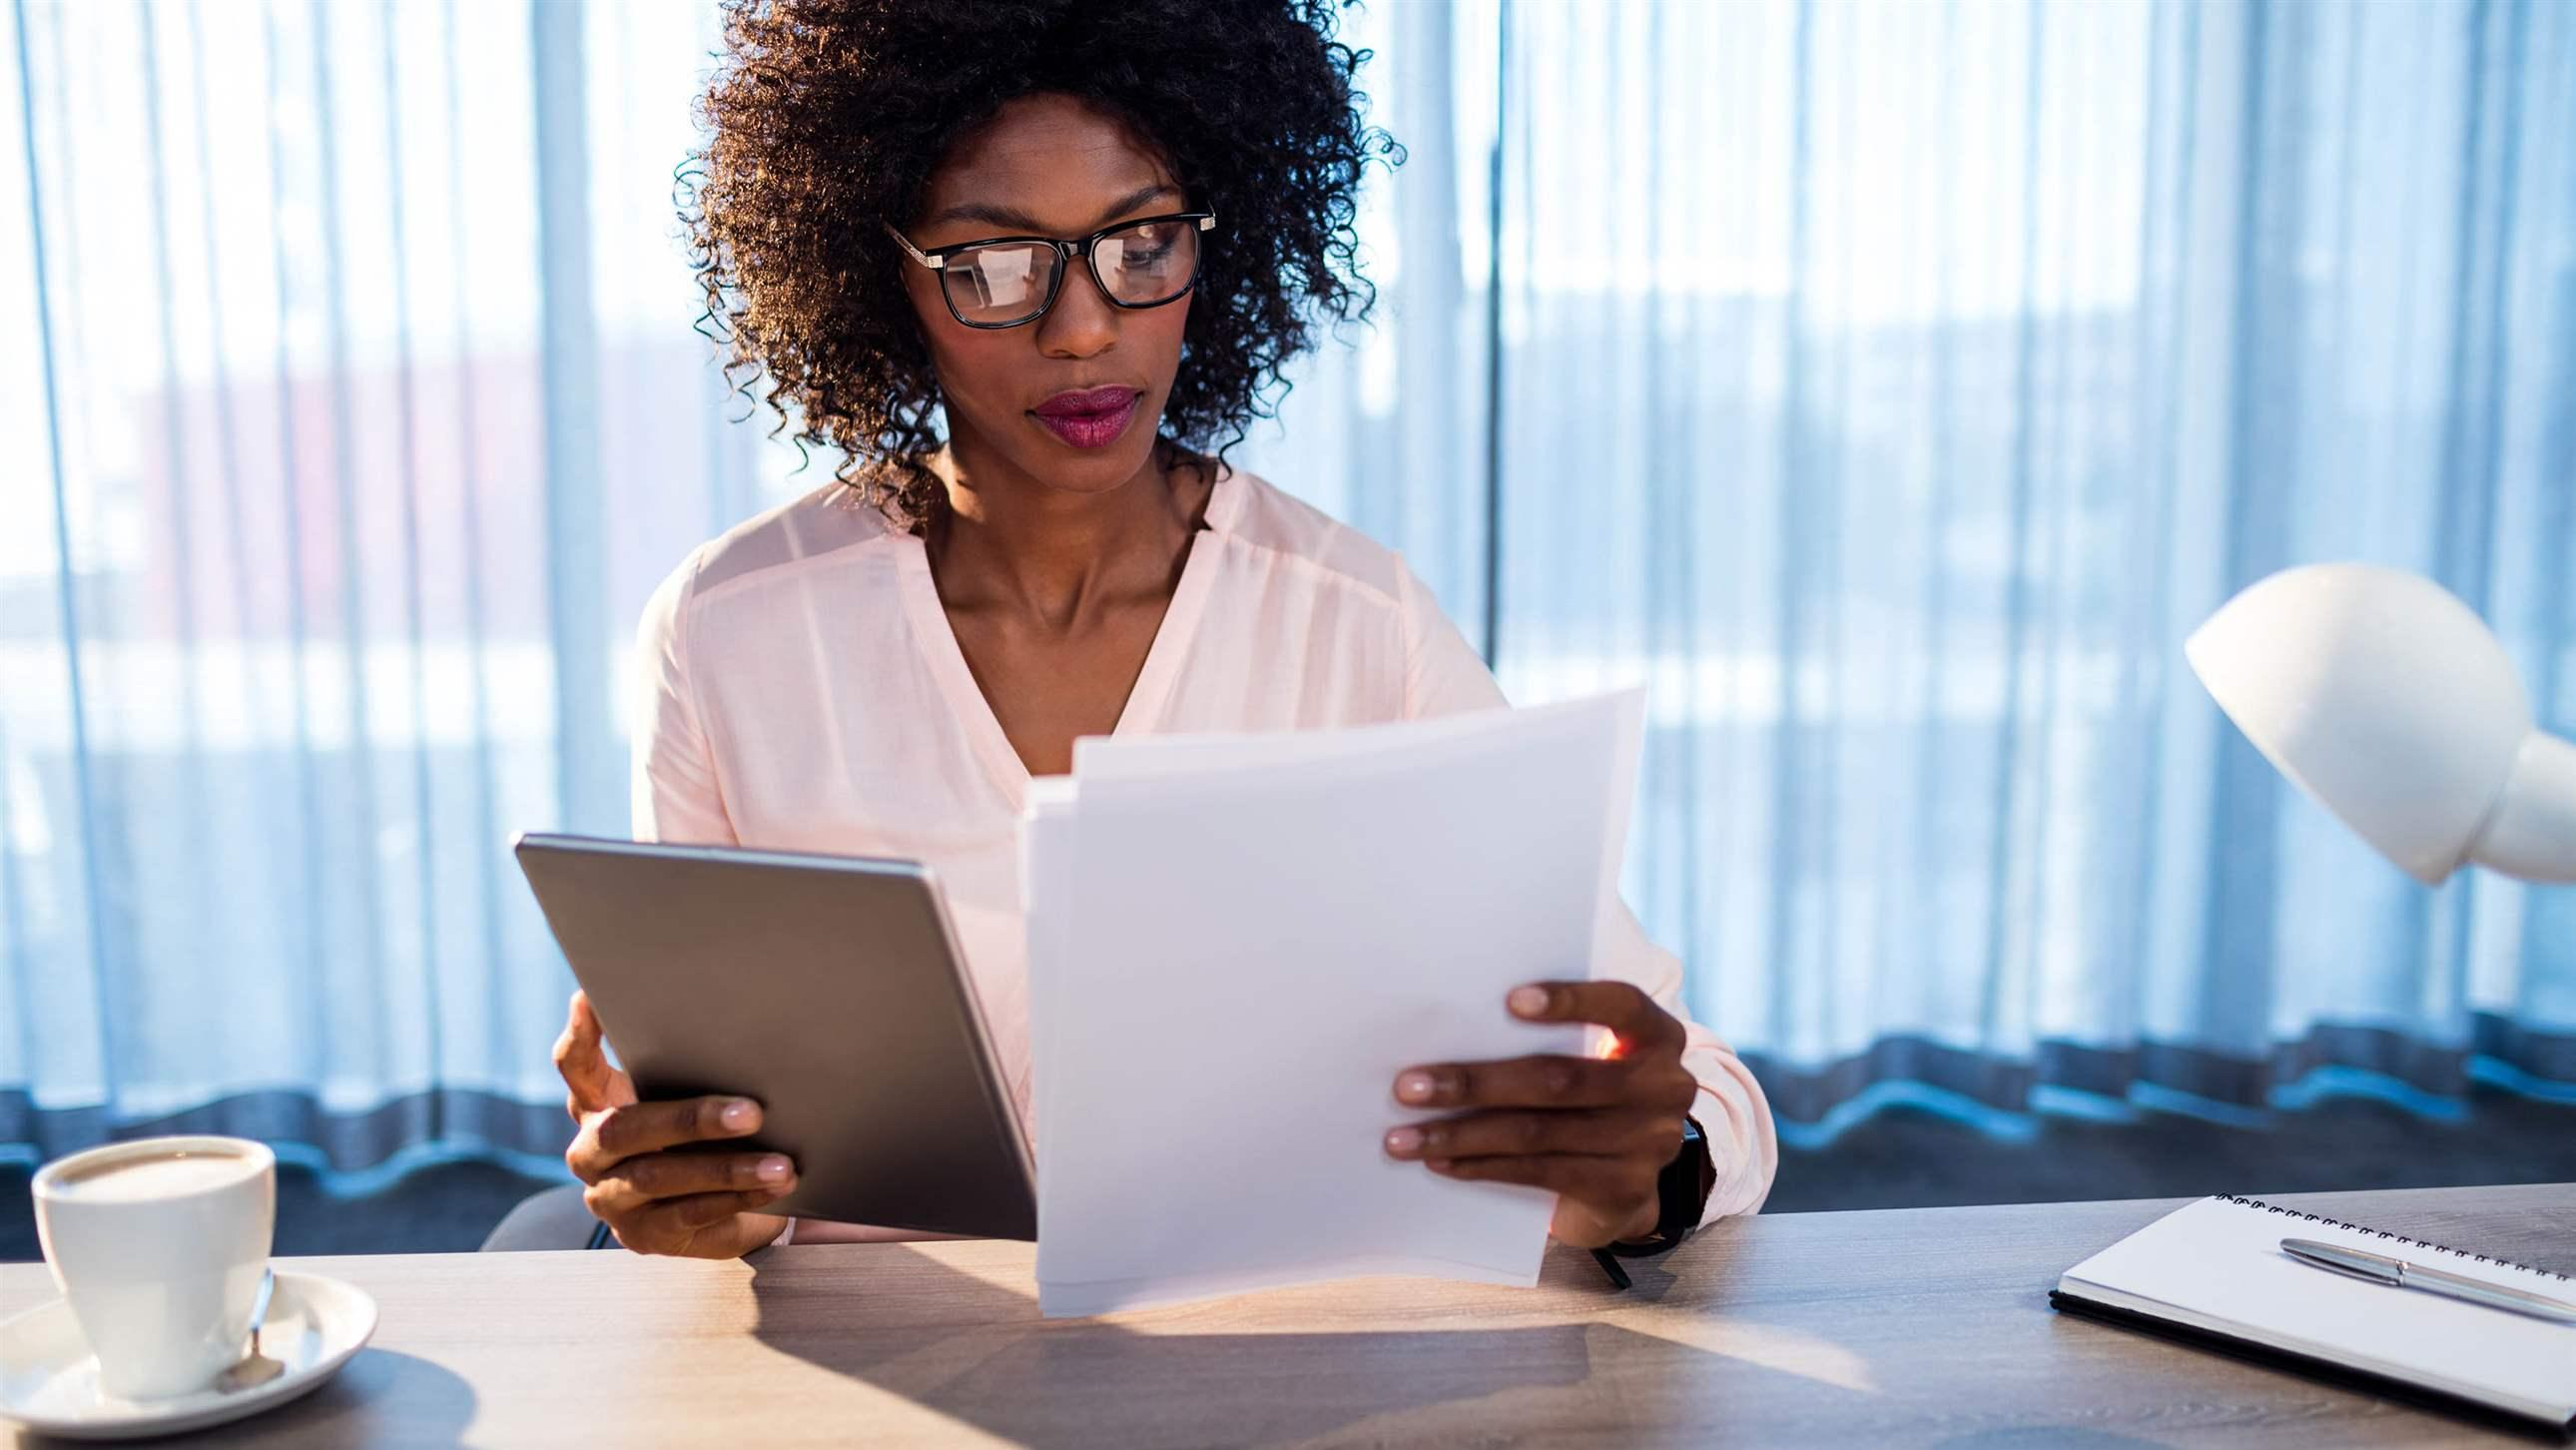 businesswoman looking at a tablet and documents